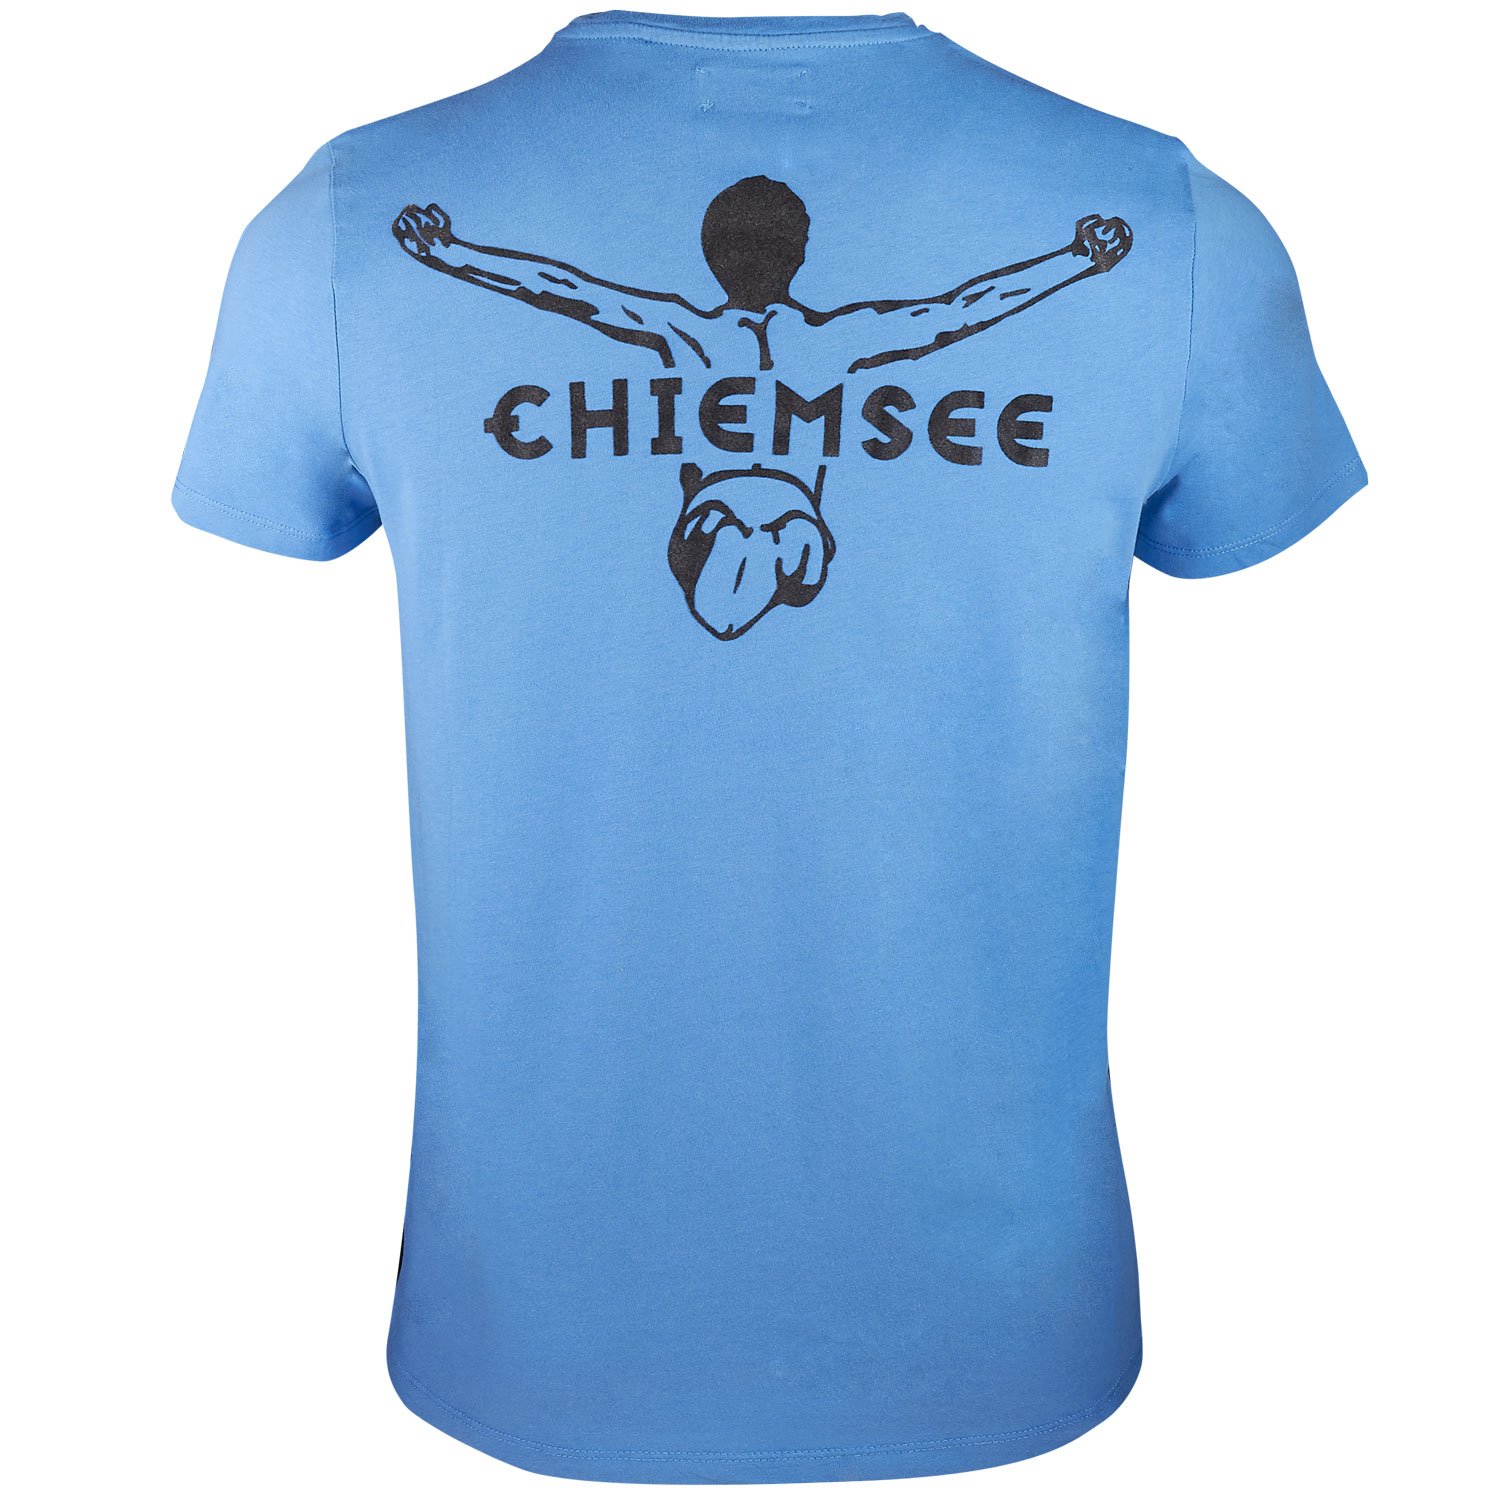 Chiemsee Herren Shirt Manhatten, T-Shirt – Bild 7